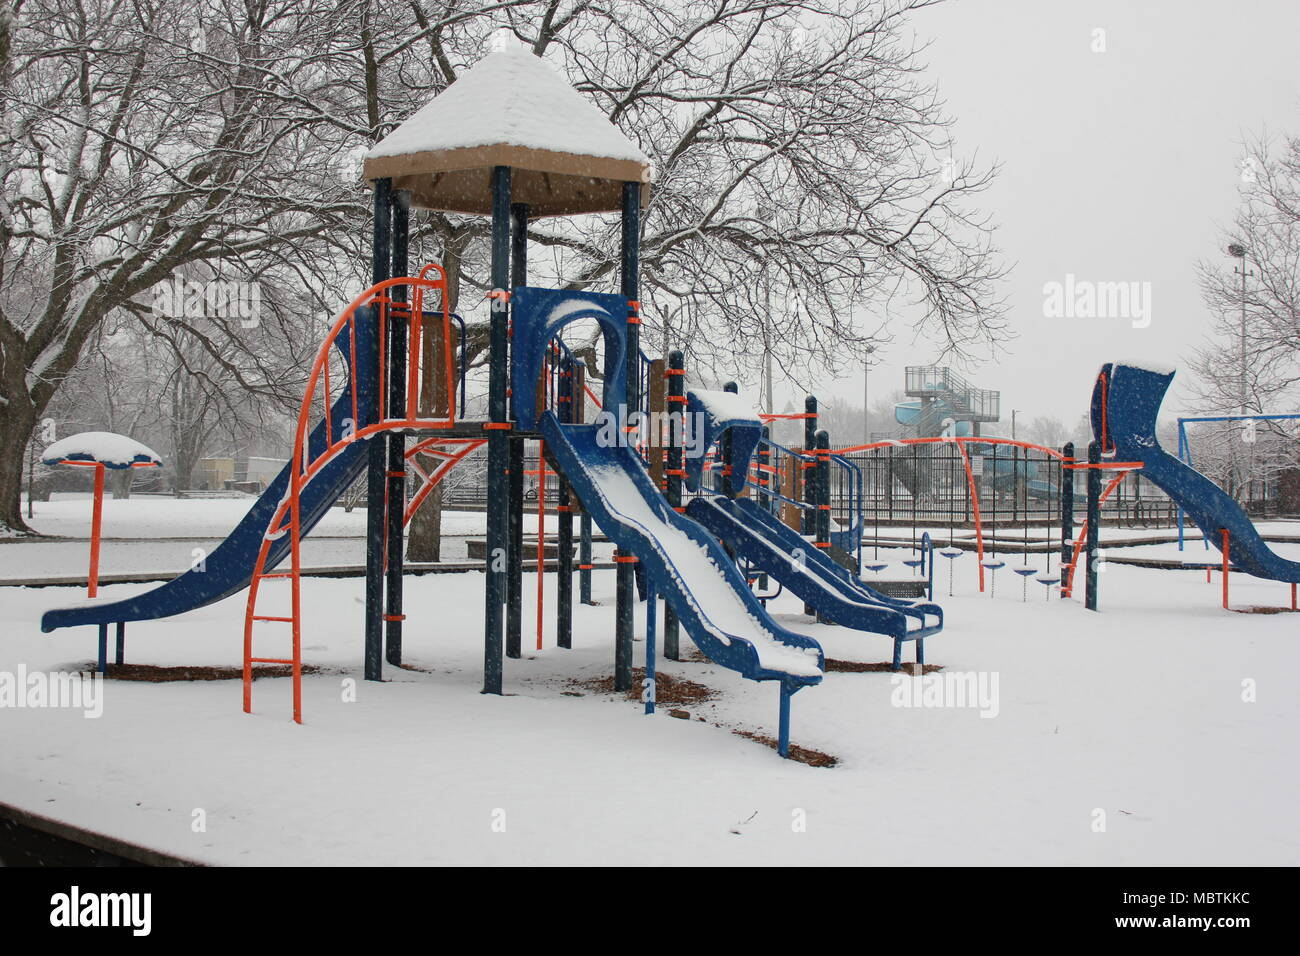 Chicago's Norwood Park's empty playground just after snowfall in a cloudy day. - Stock Image